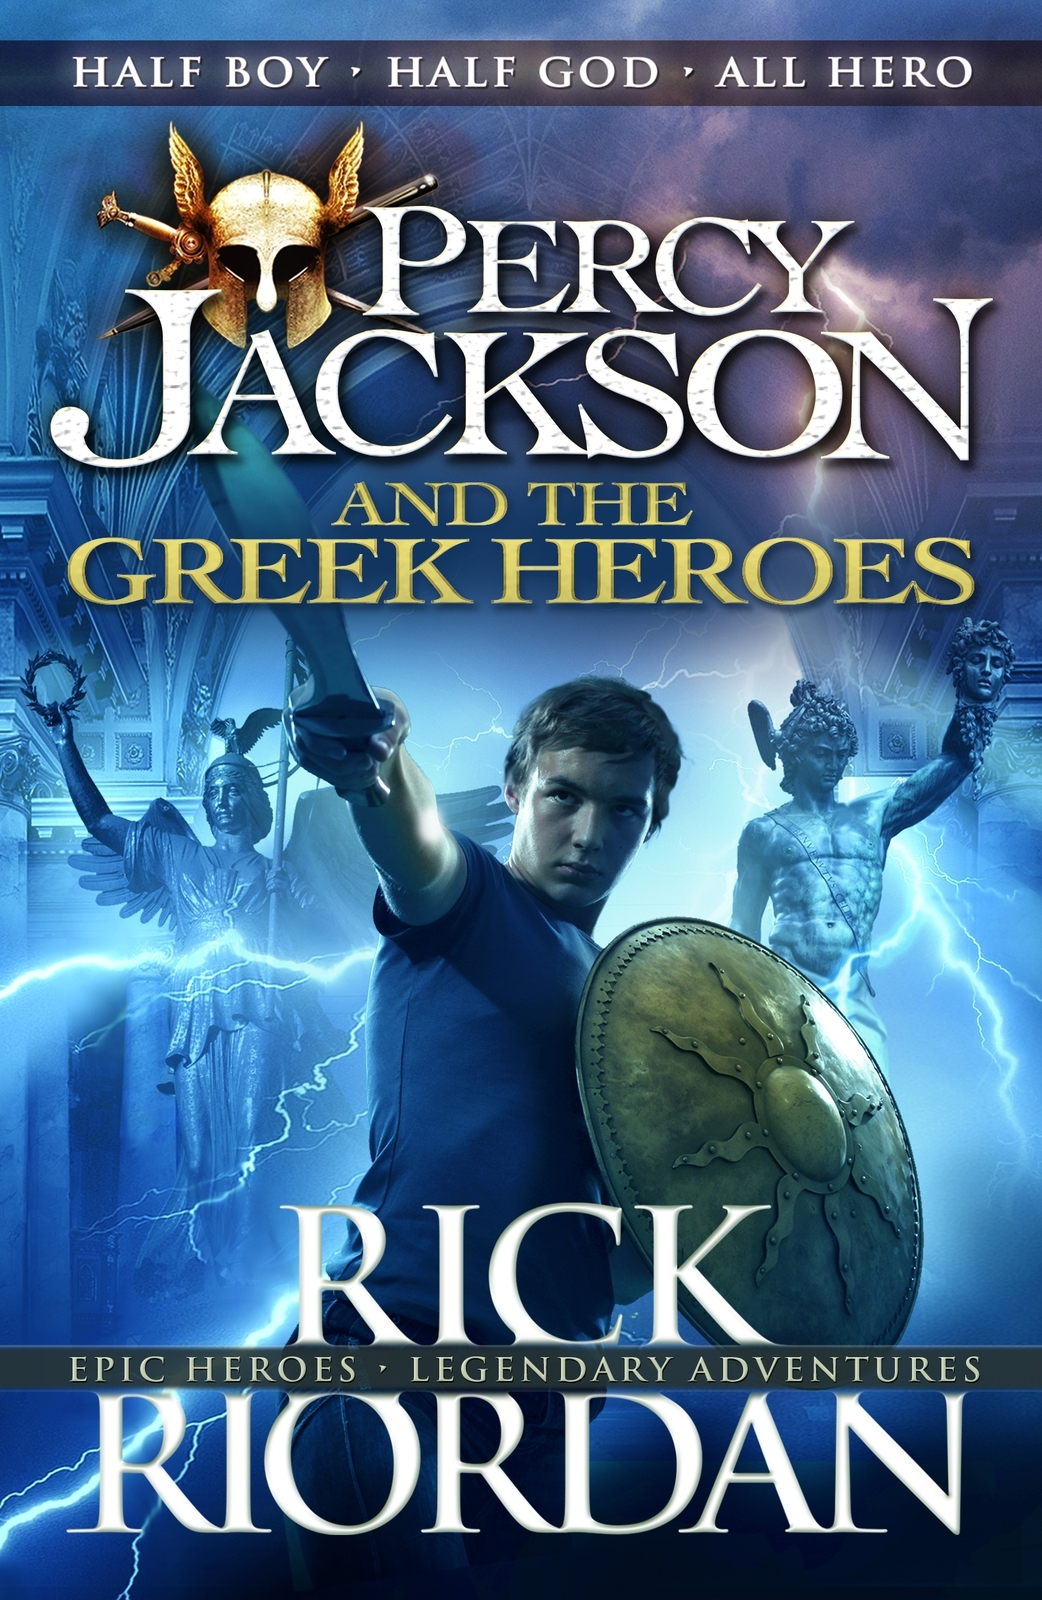 Percy Jackson and the Greek Heroes by Rick Riordan image